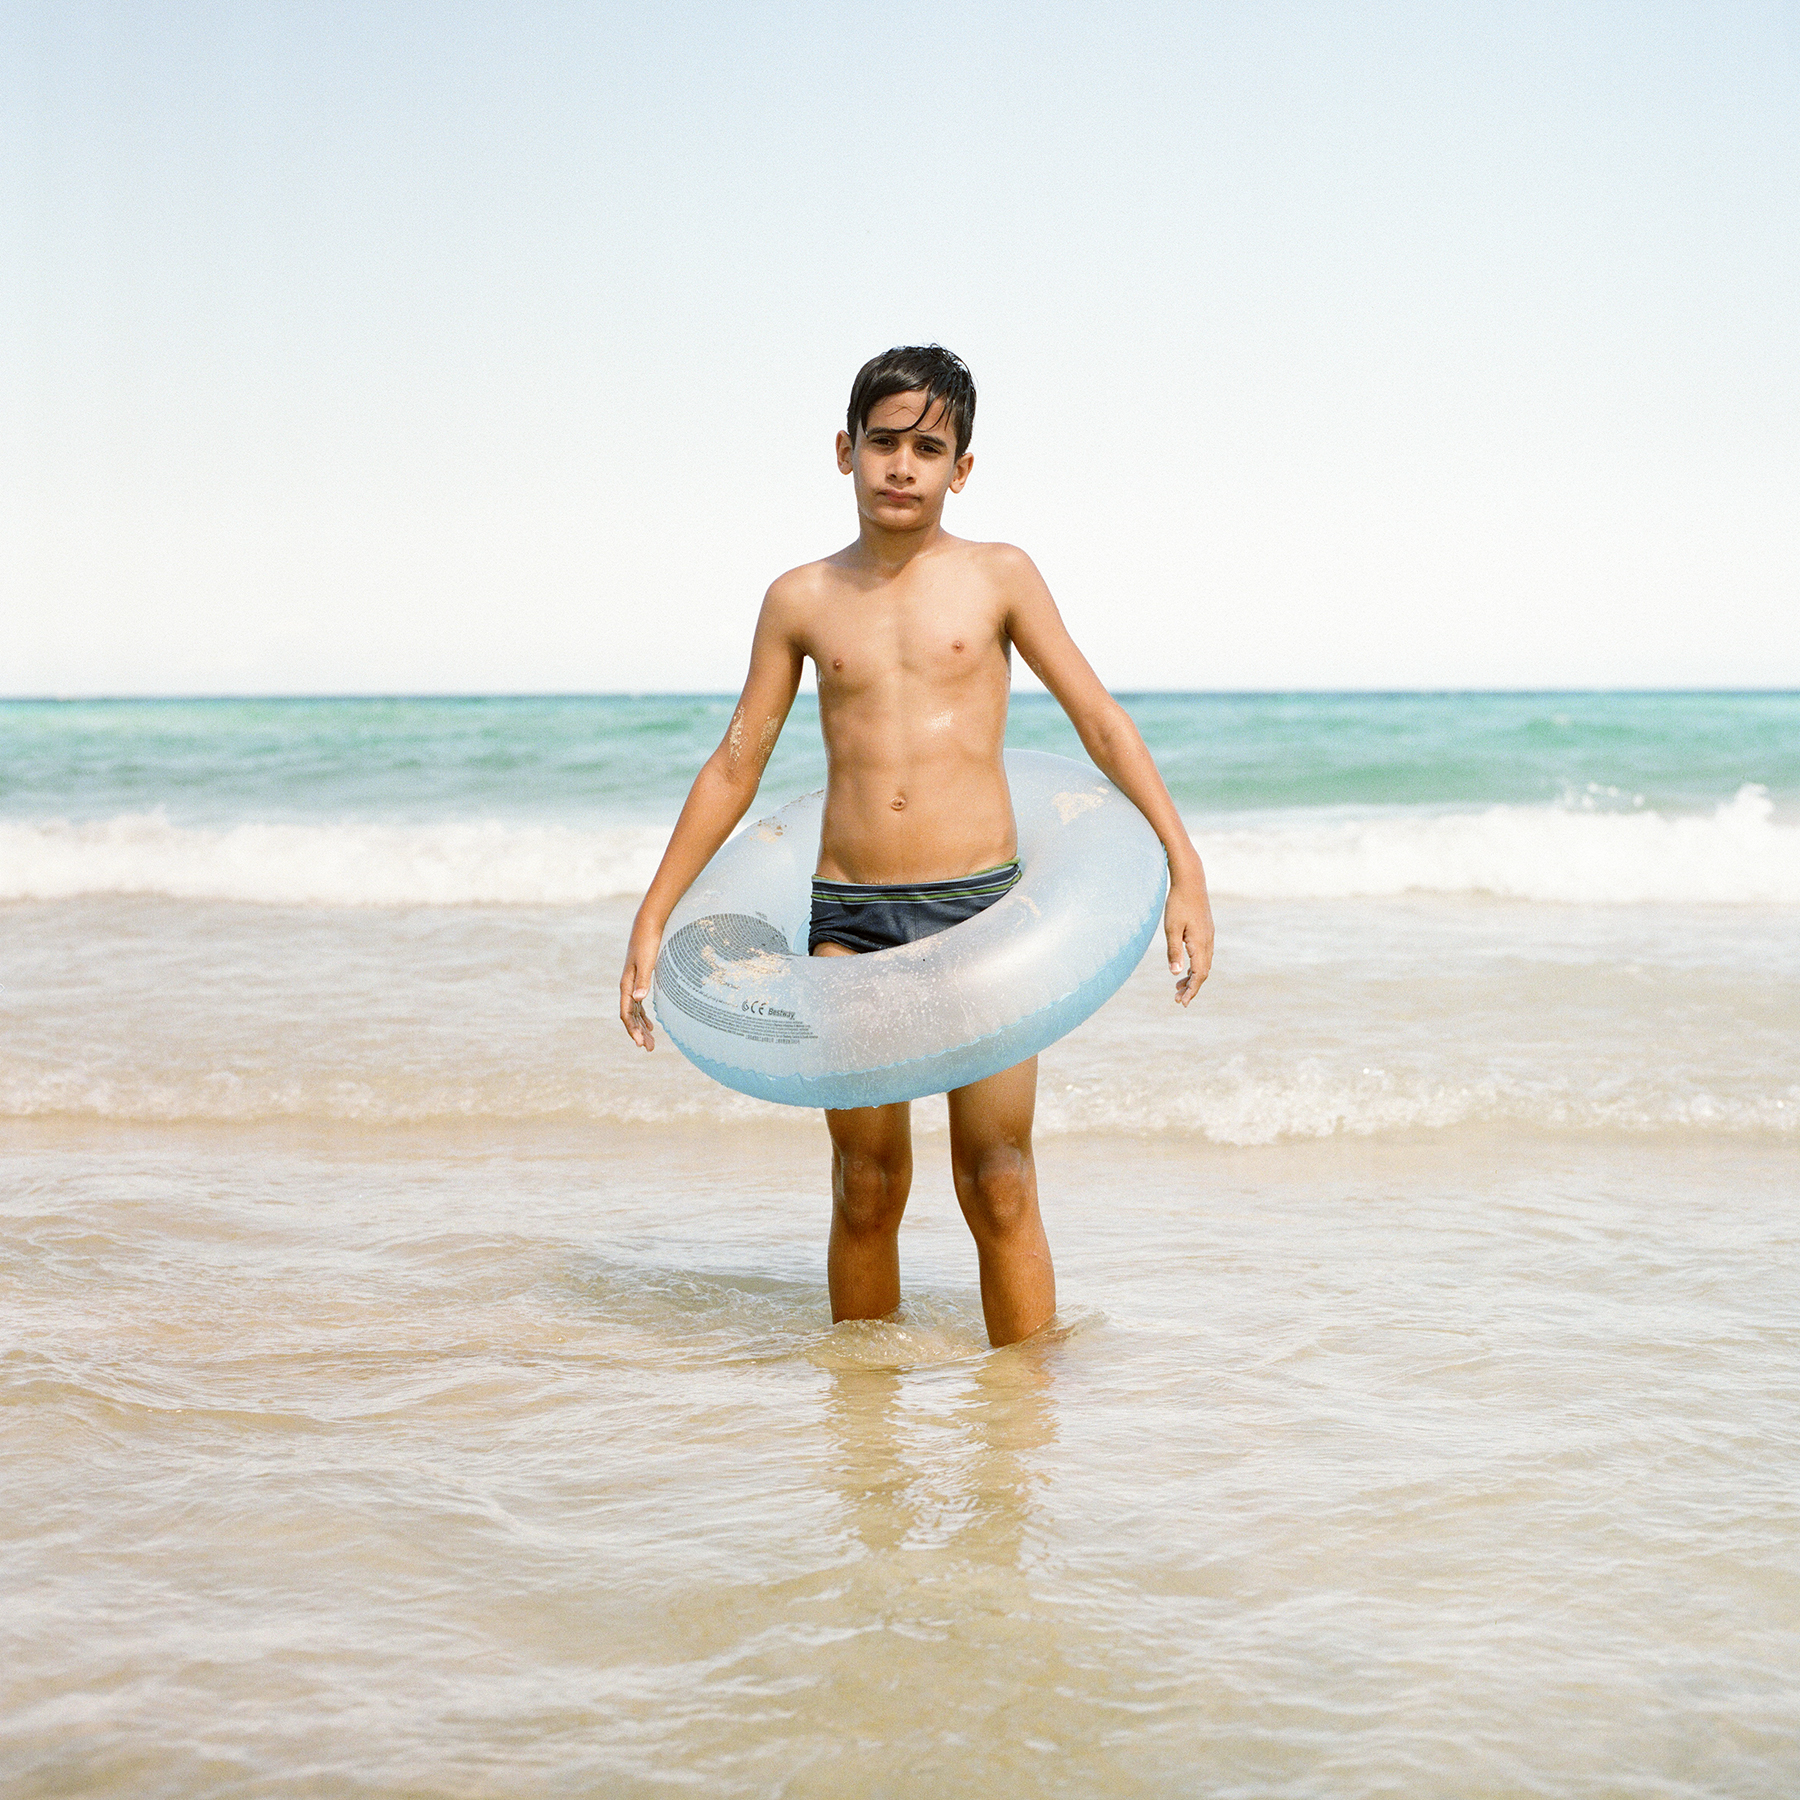 Cuba-boy-with-float-ocean-santa-maria-playa-havana-christina-arza.jpg